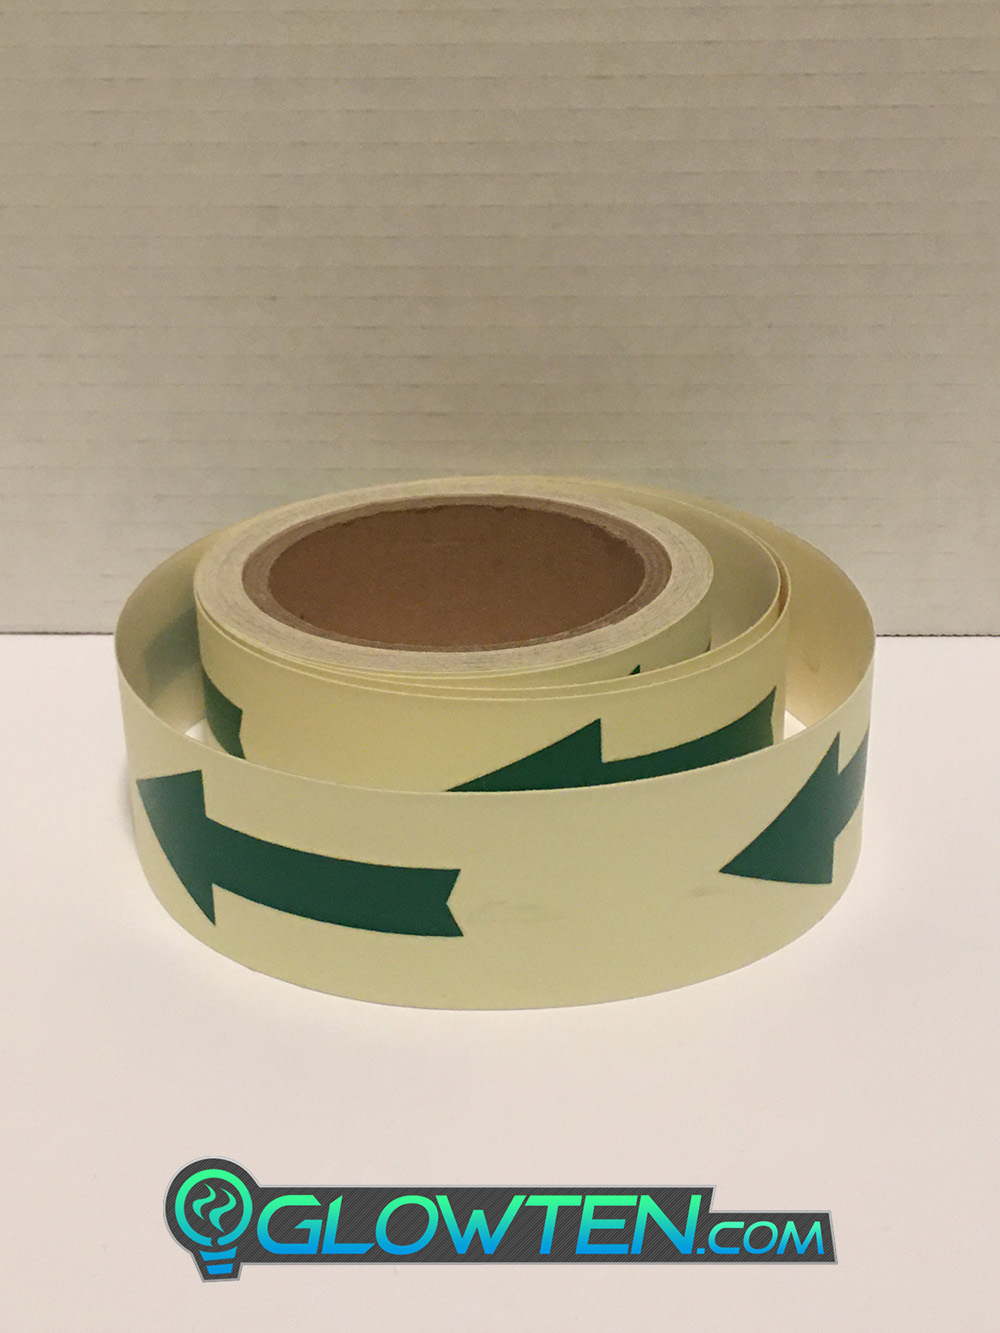 GLOWTEN.com - ARROW POINT TAPE Glow in the Dark Green Single Direction Sign All Purpose Tape Roll Lite Green Absorbs photons from any light source and then this stored energy is released in the dark, resulting in the glowing effect 1 One